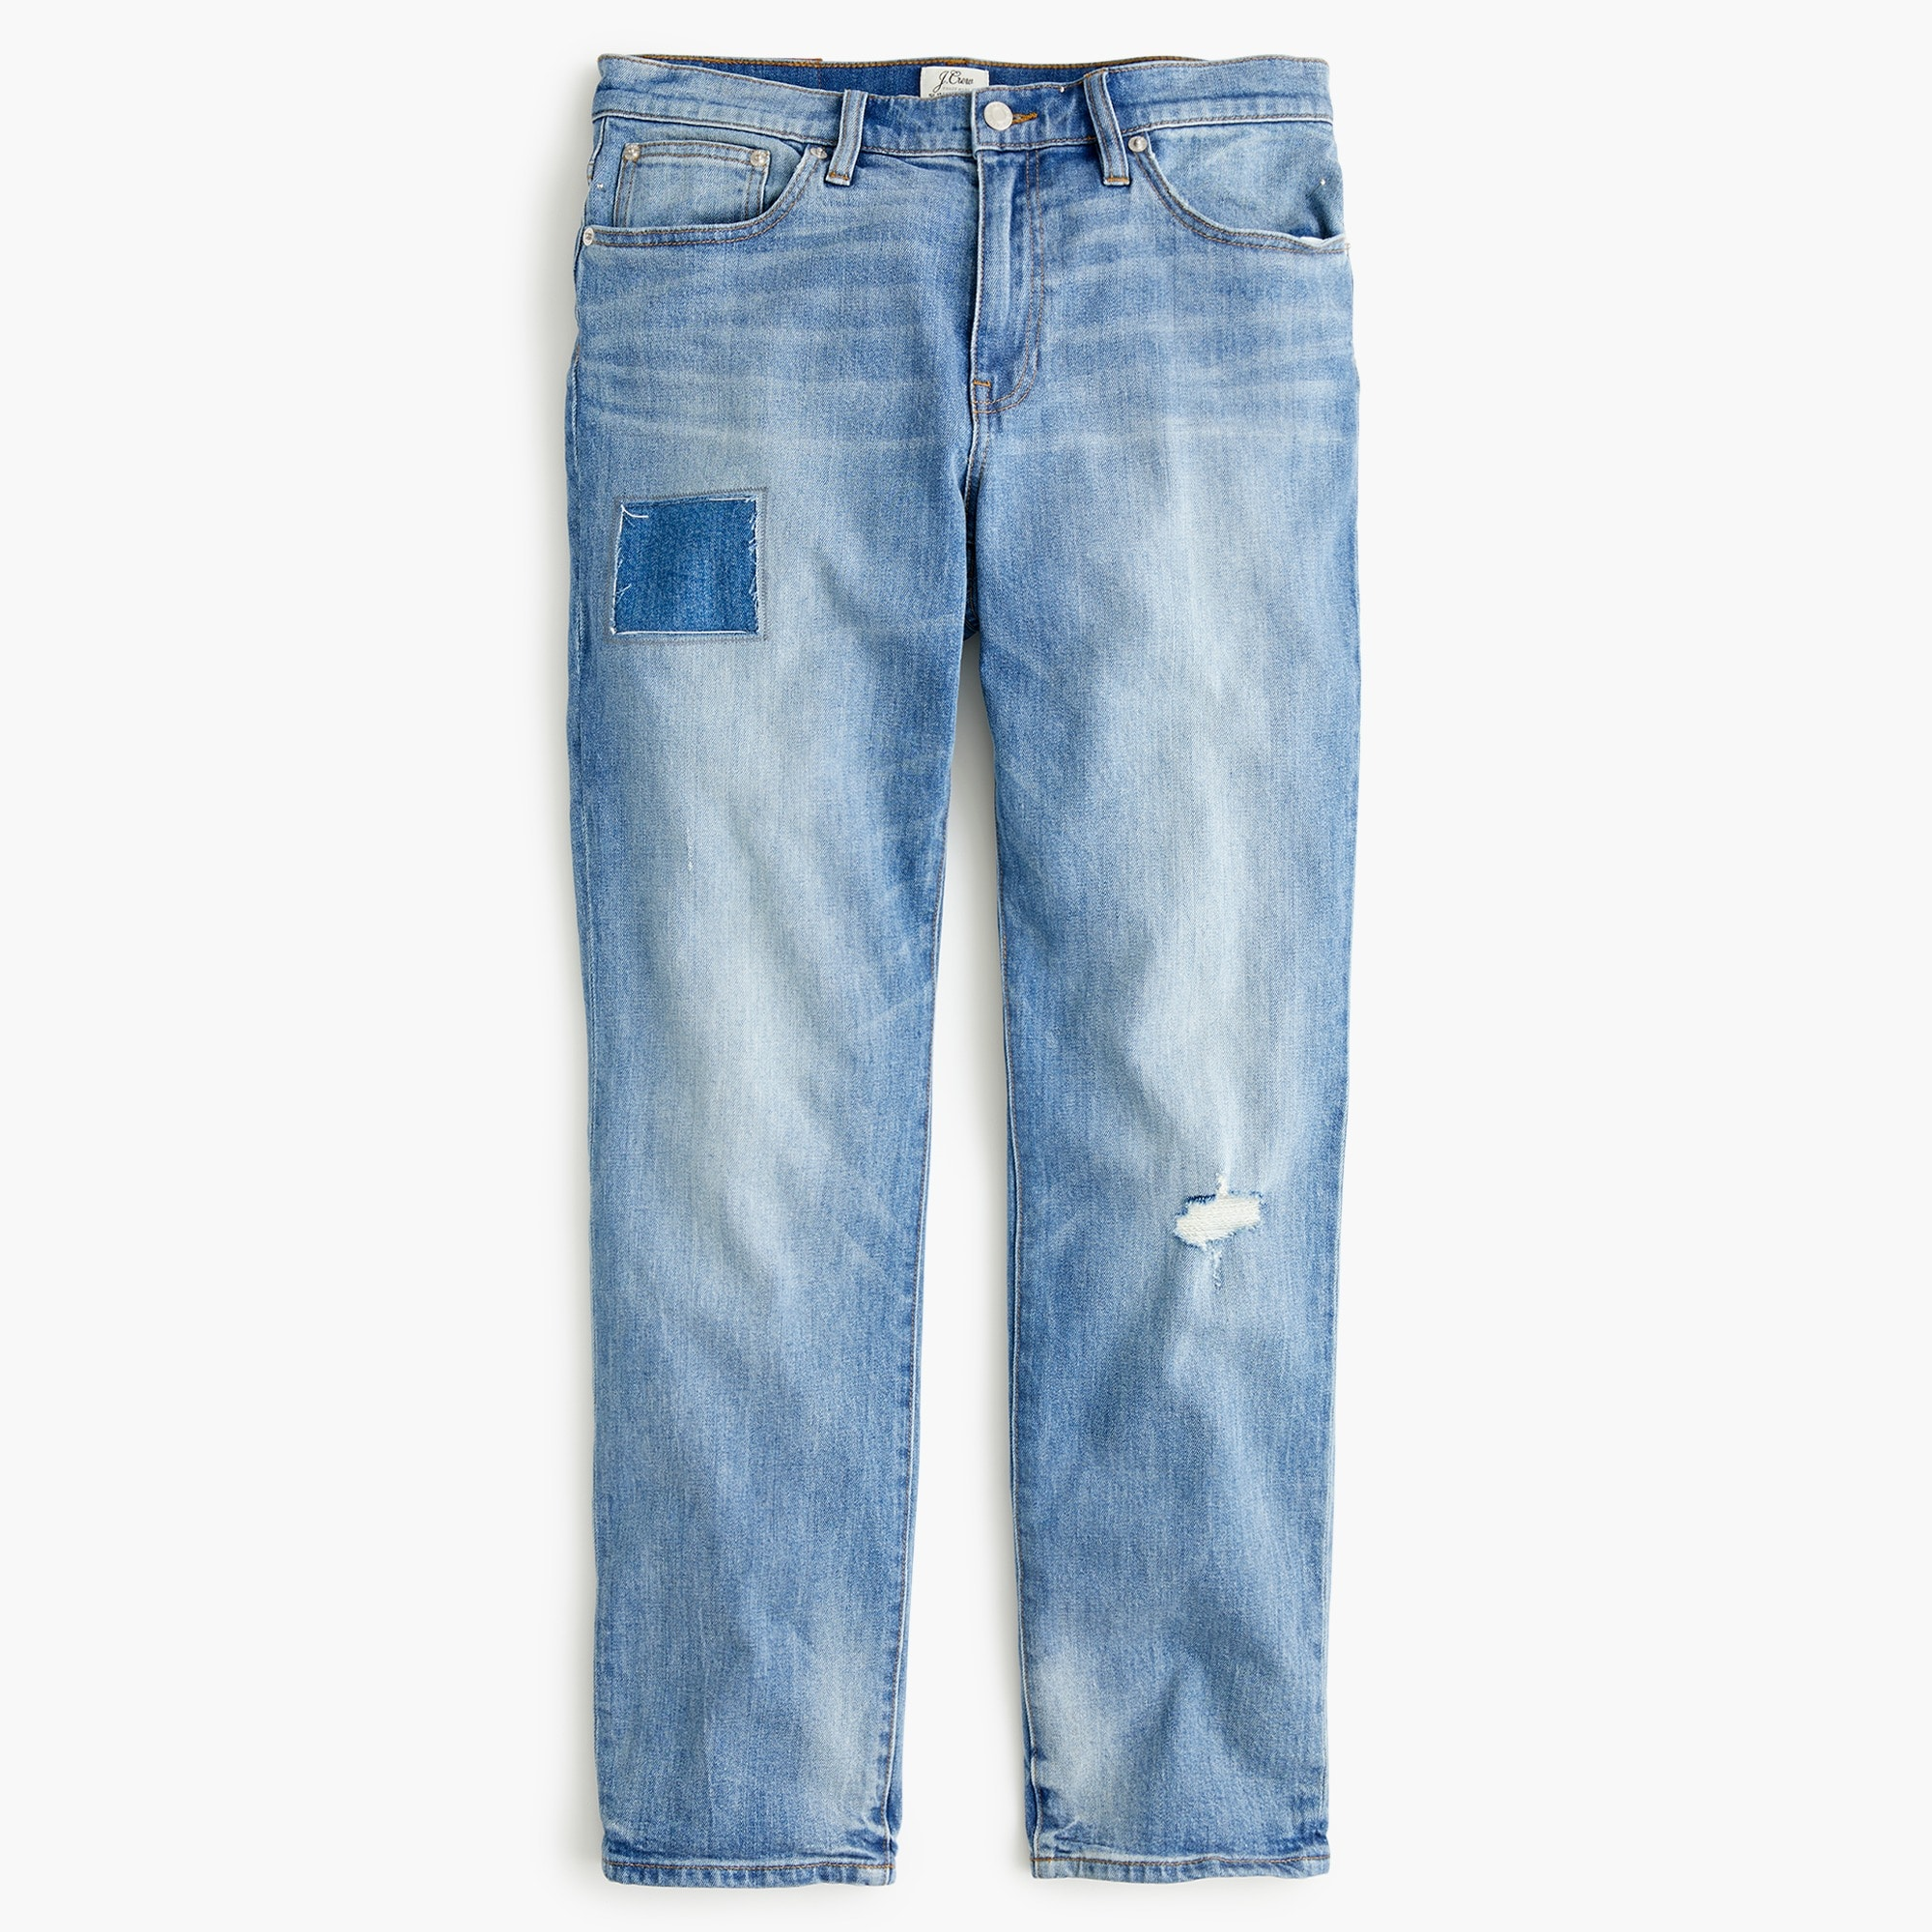 women's petite slim boyfriend jean with patch and distressing - women's denim